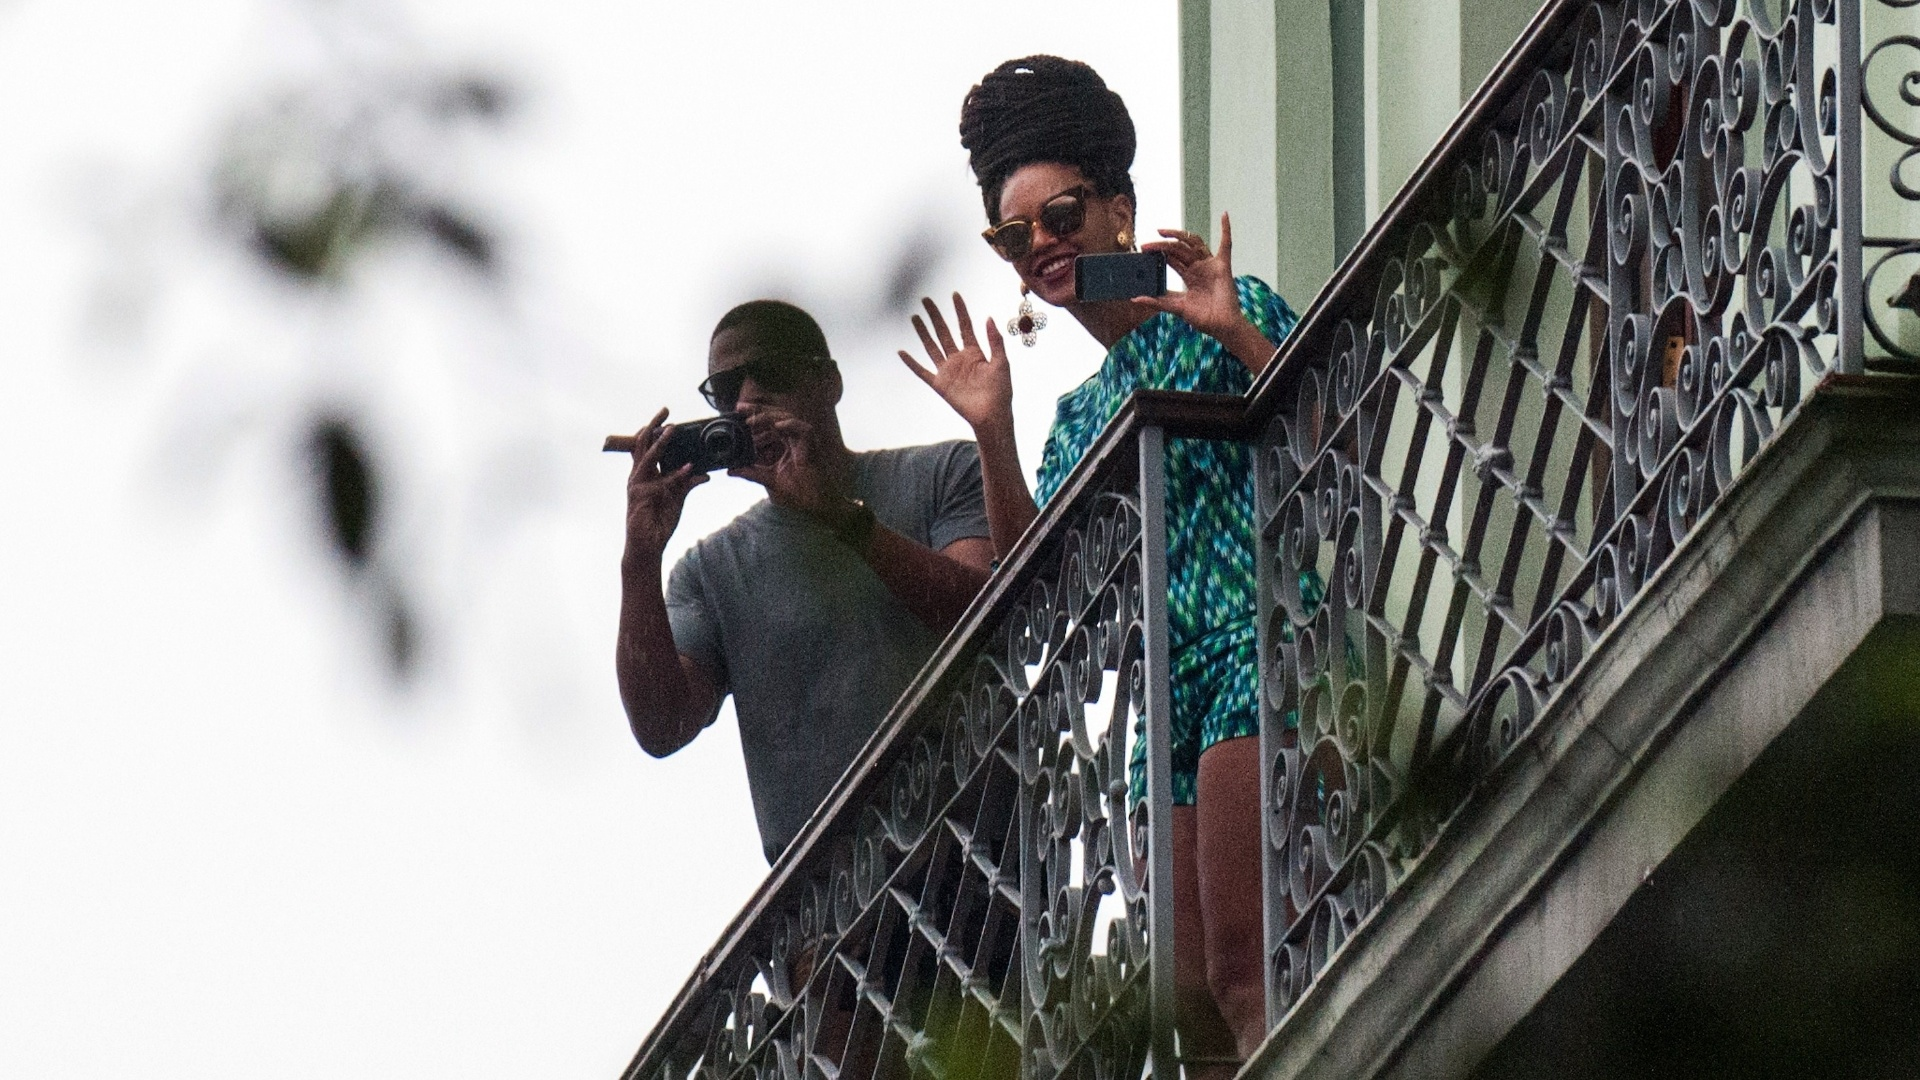 5.abril.2013 - Jay-Z e Beyonce acenam para fs e fotografam a movimentao em frente ao hotel Saratoga, em Havana